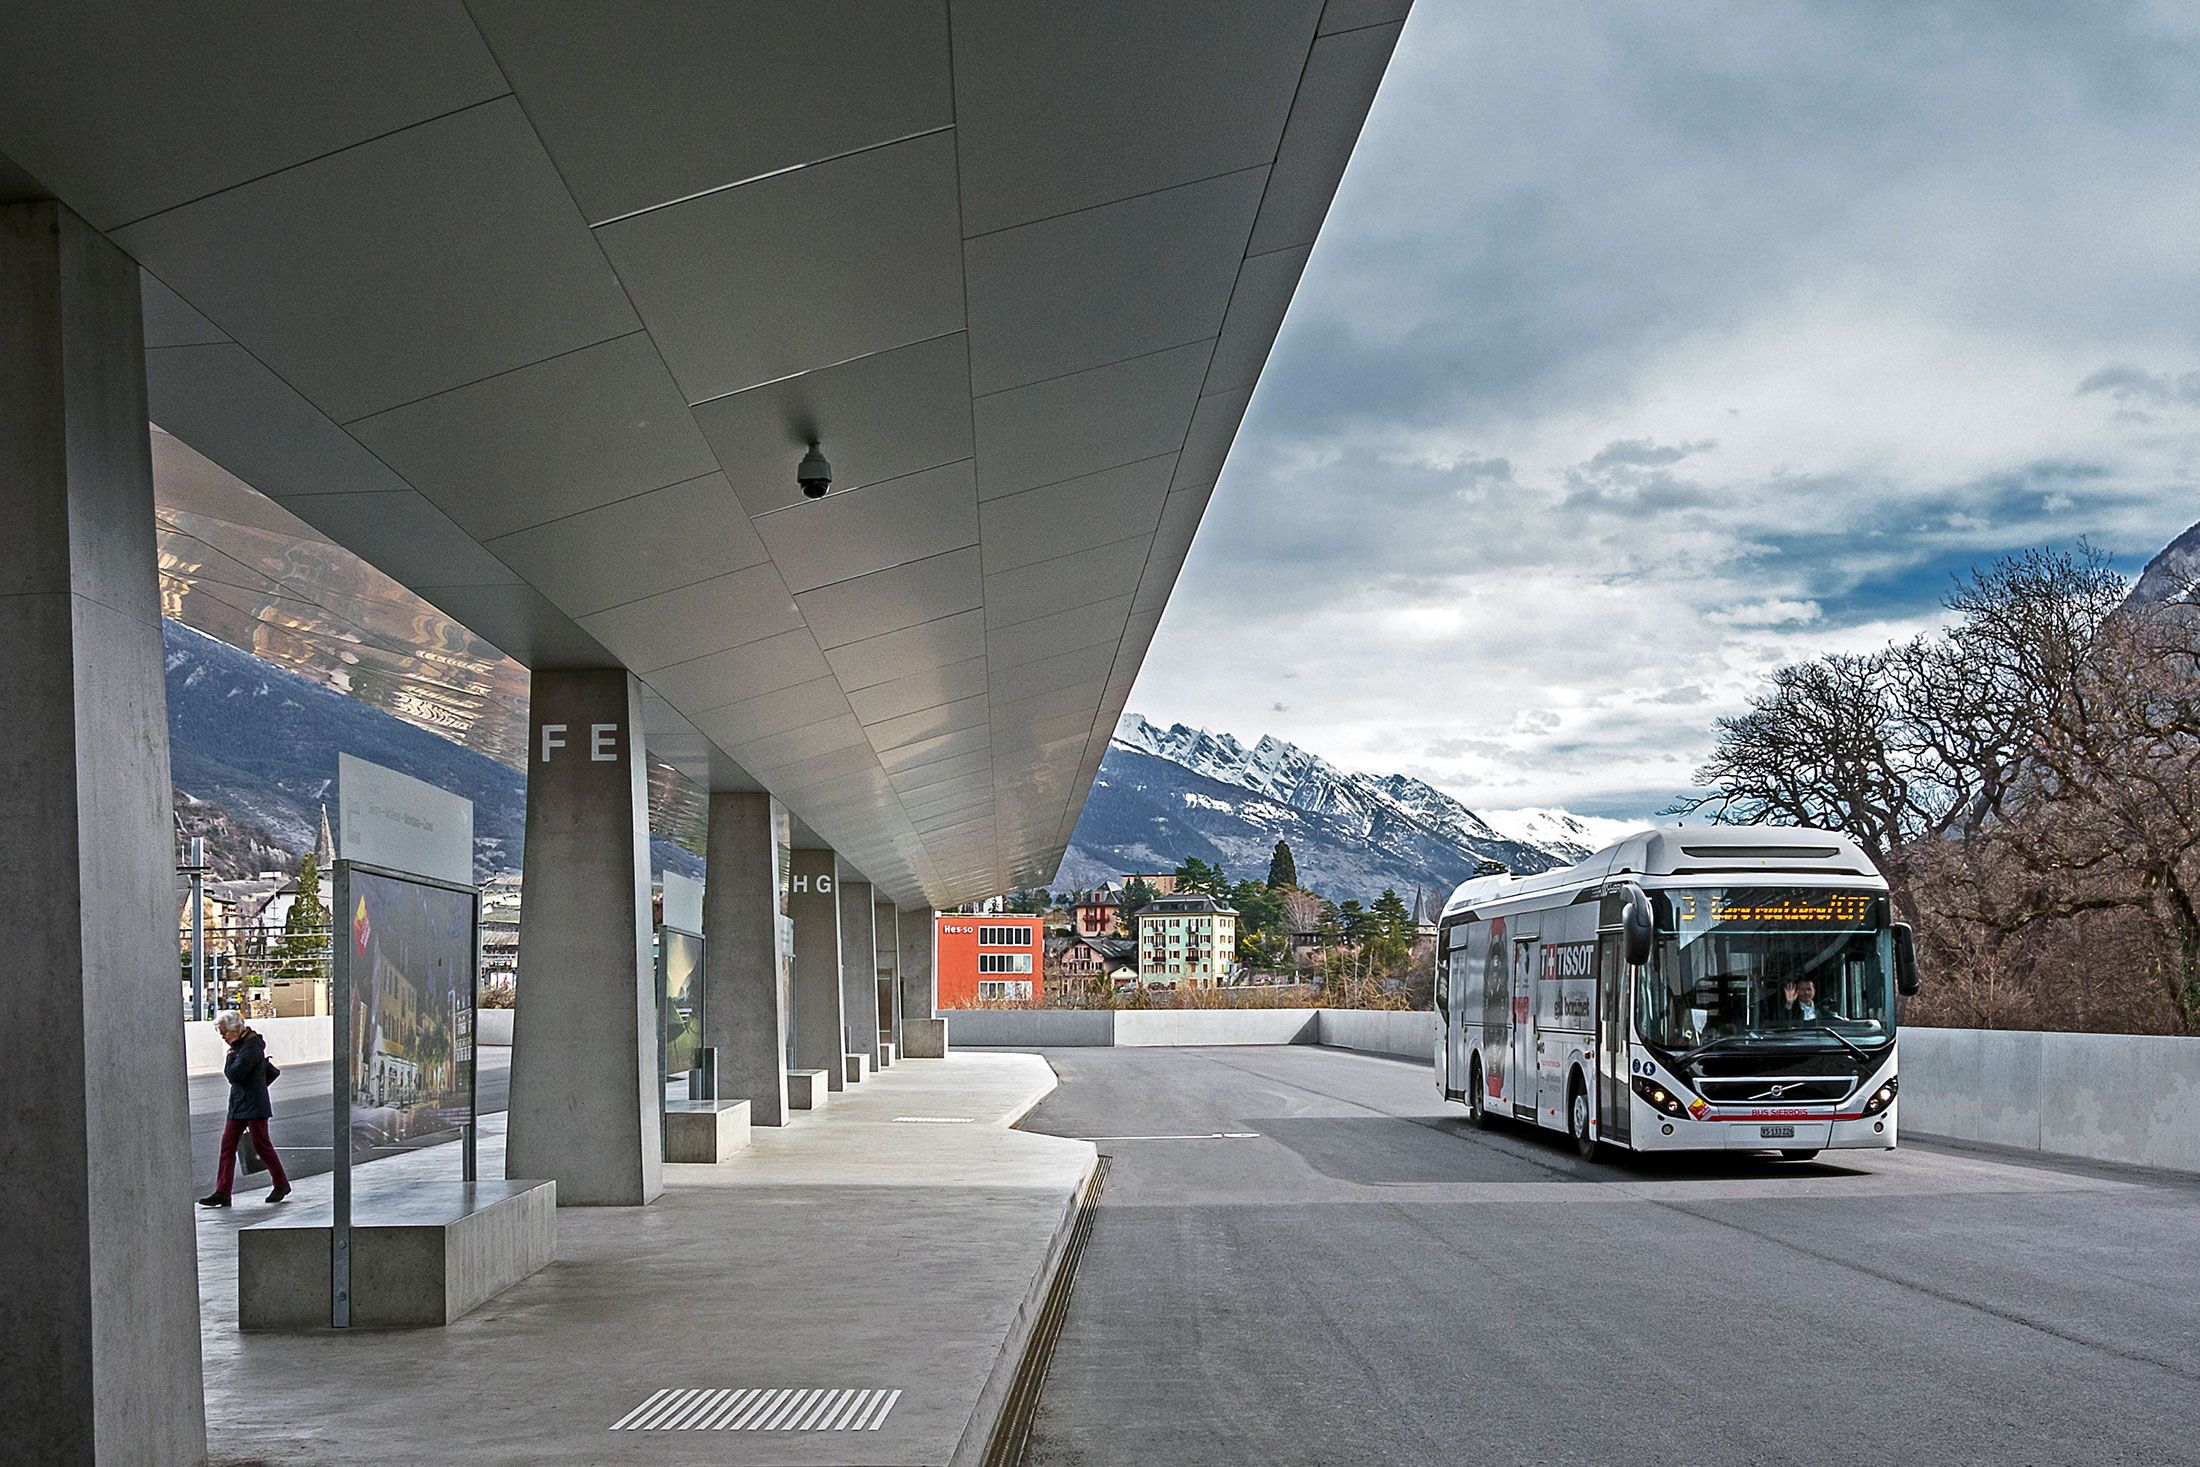 A Volvo full hybrid bus in Sierre's modern bus station with mountains in the background